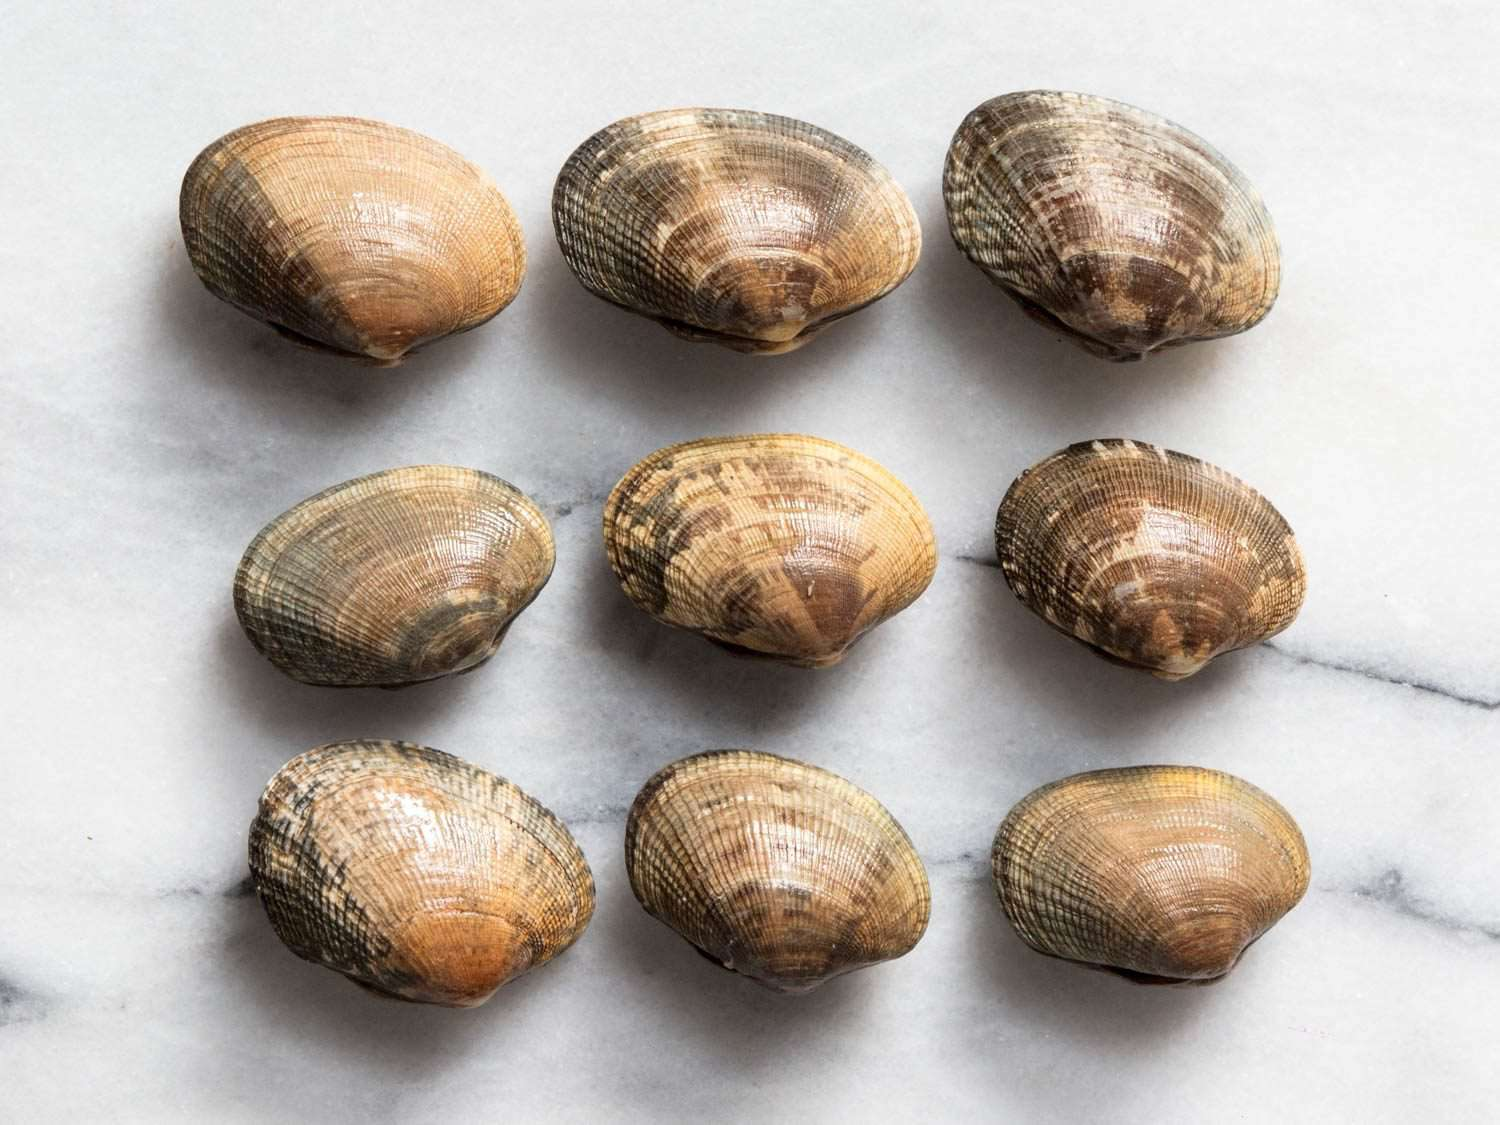 Nine manila clams arranged in rows of three on a marble surface